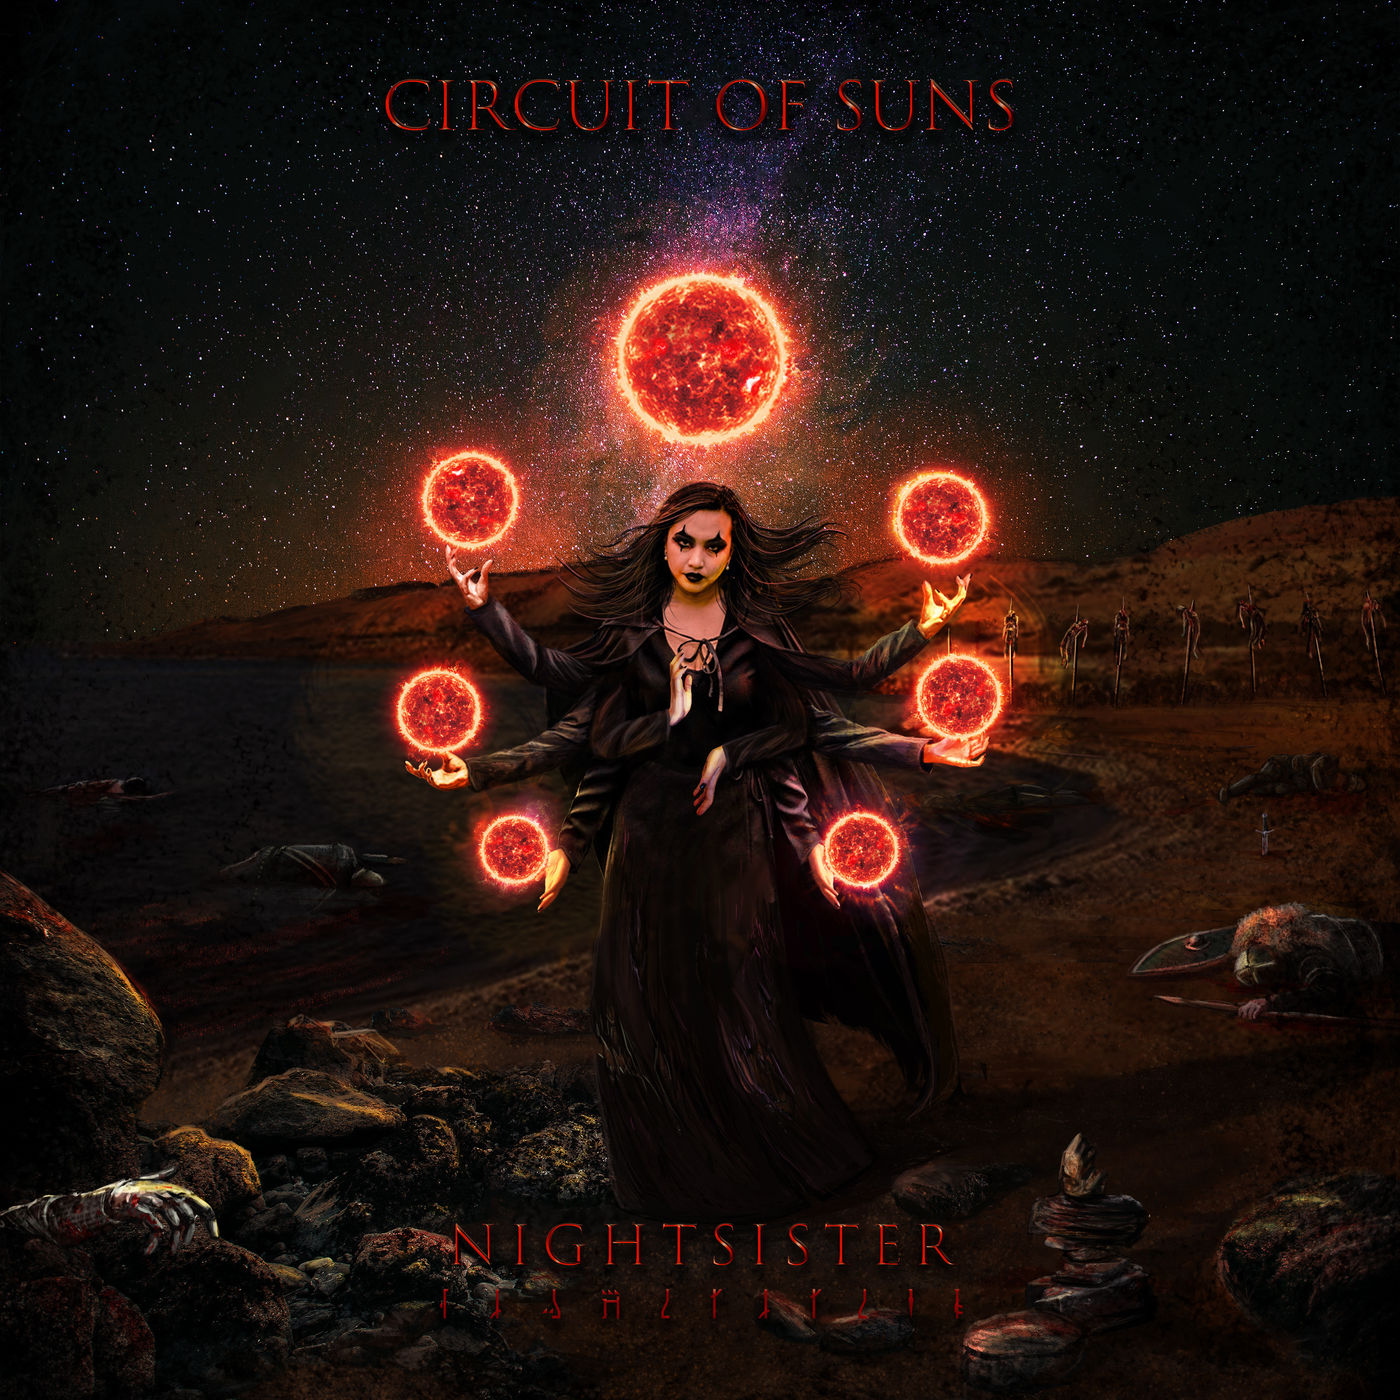 Circuit of Suns Night Sister EP